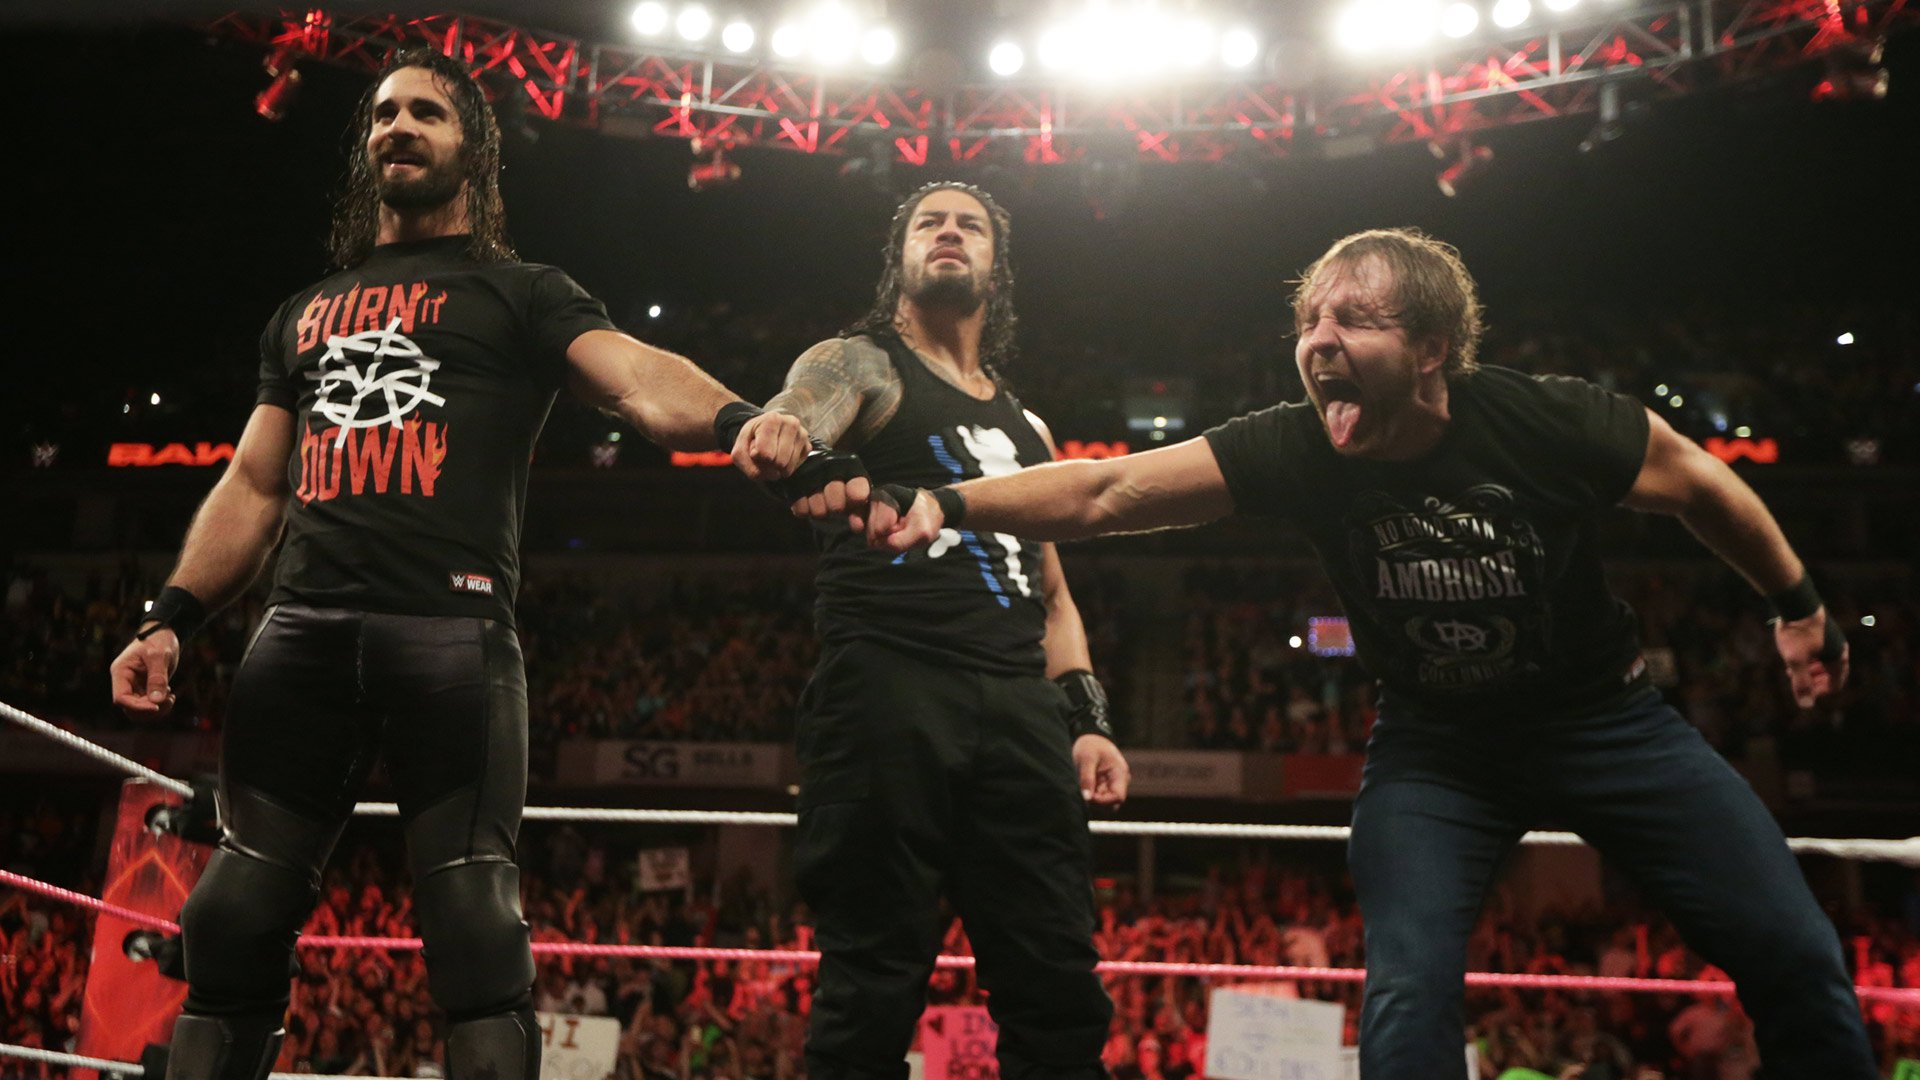 Resultado de imagen para reunion the shield 2017 raw